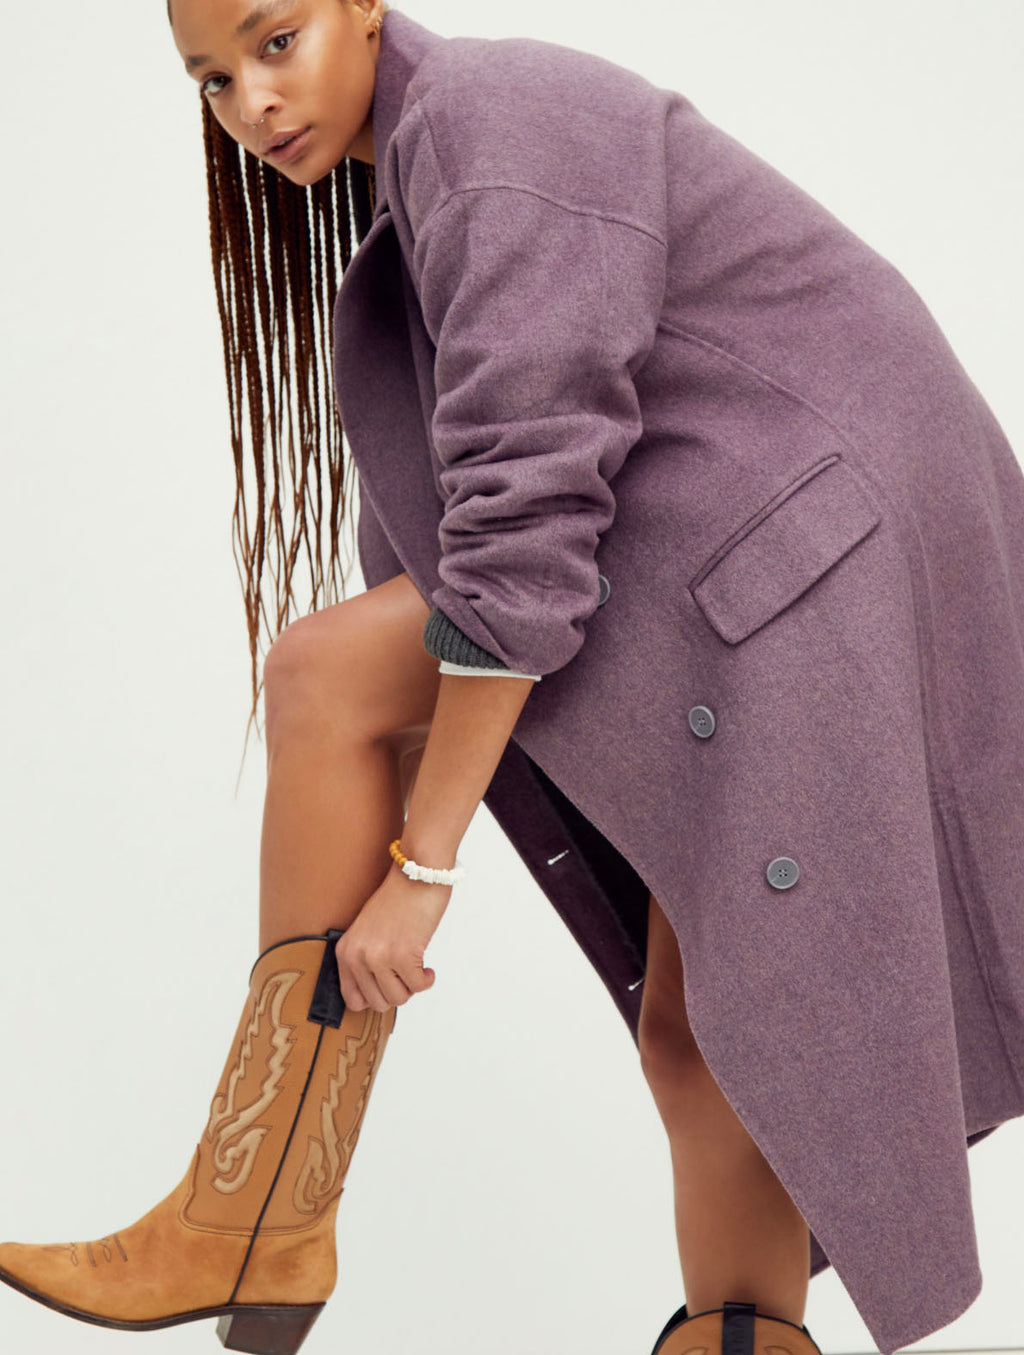 Free People Adore You Tailored Coat in Heather Plum